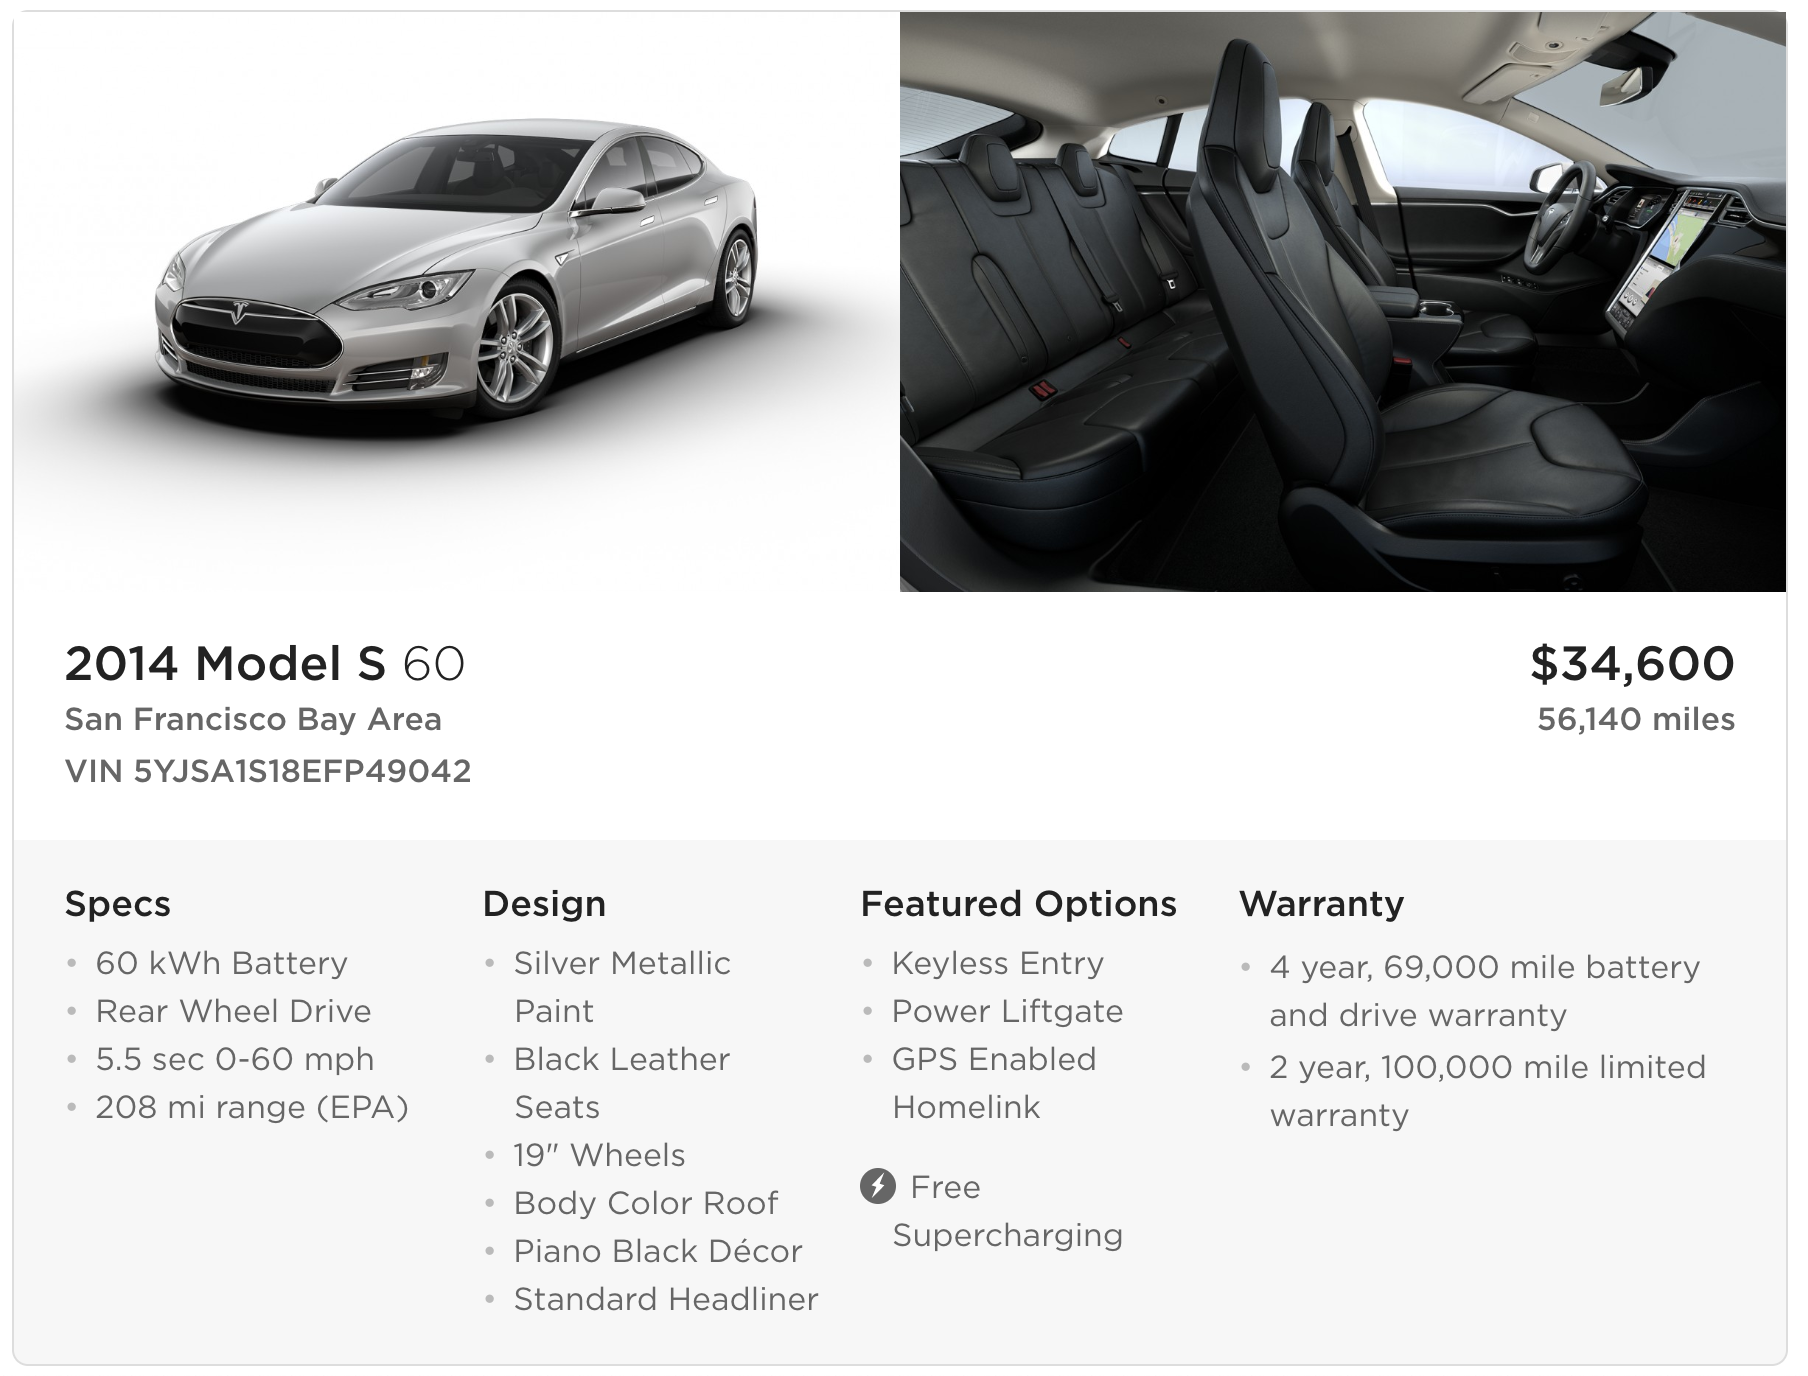 Tesla Has Offered Up The Option Of Used Teslas As A Way For Those Who Can T Wait Standard Range Model 3 To Get Into In Days Rather Than